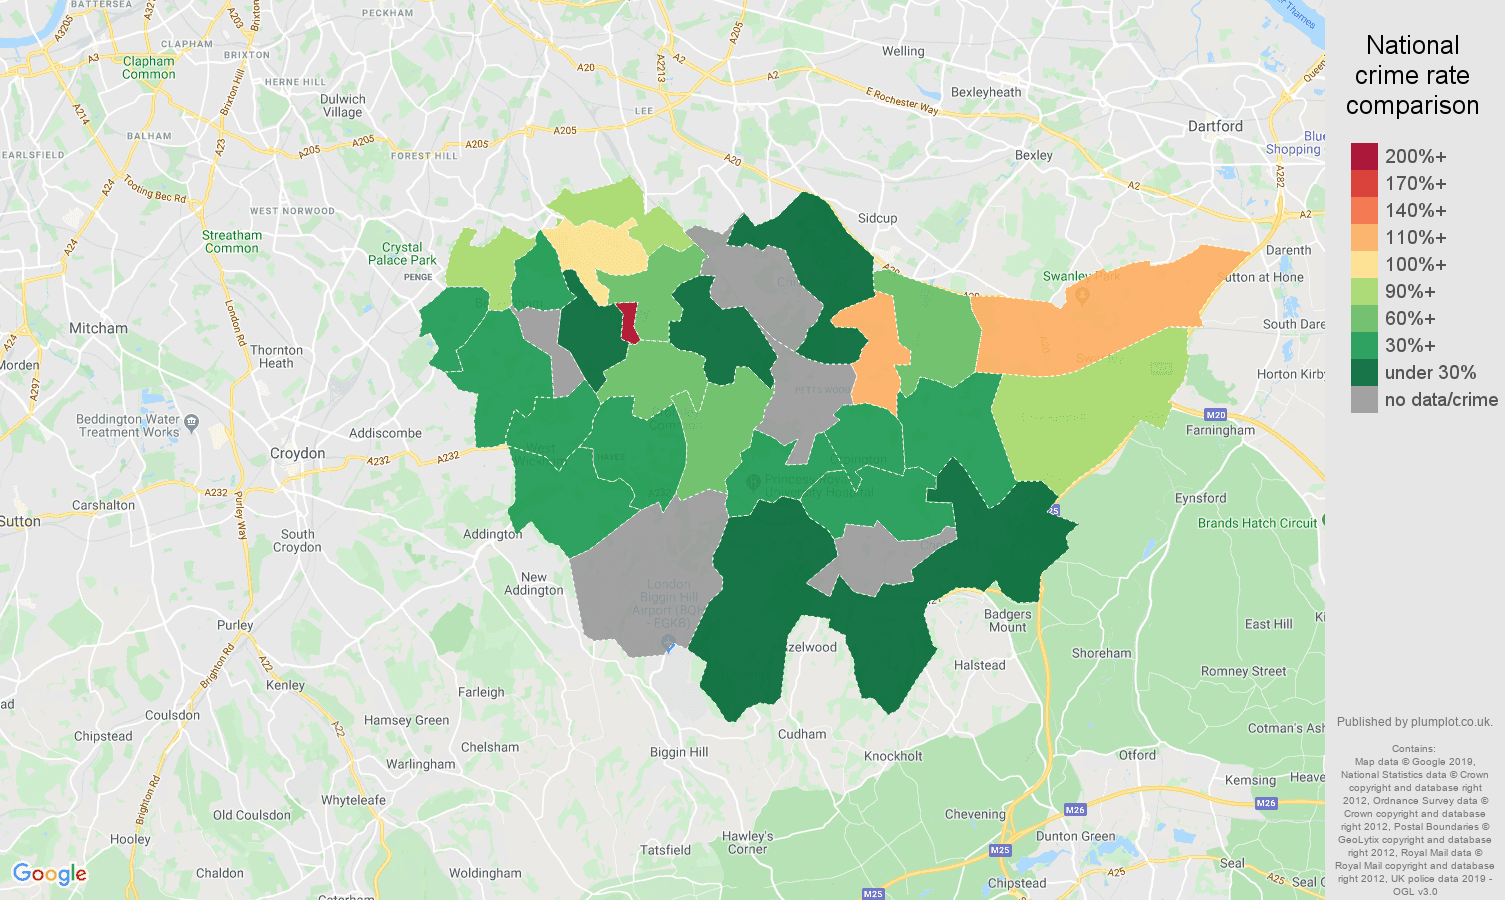 Bromley possession of weapons crime rate comparison map